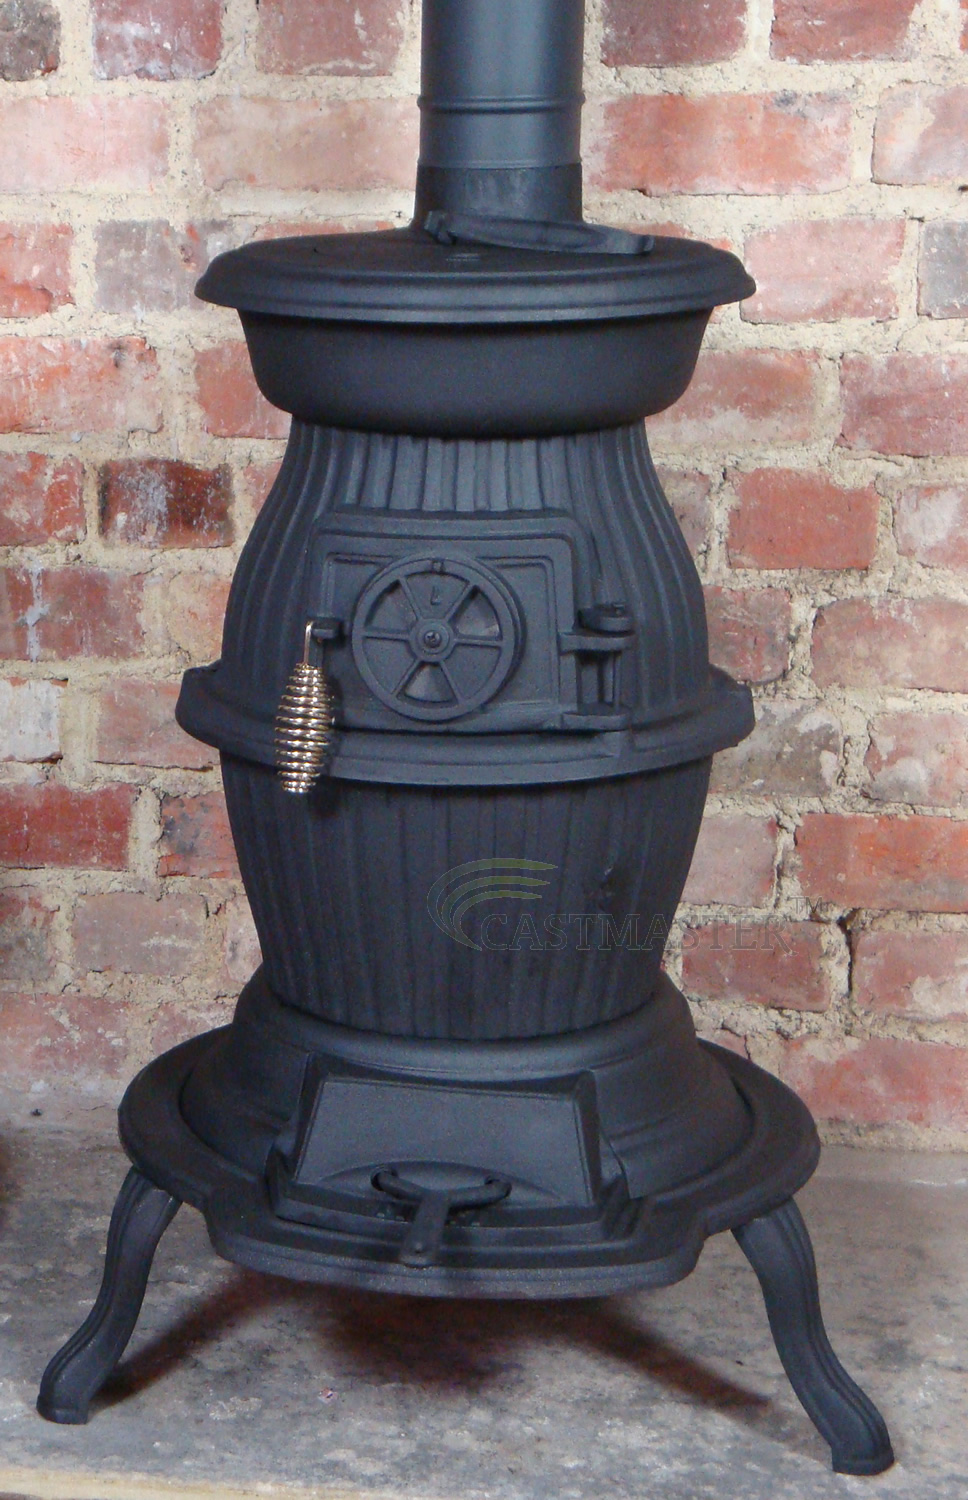 Pot Belly Wood Burning Stove WB Designs - Pot Belly Wood Burning Stoves WB Designs